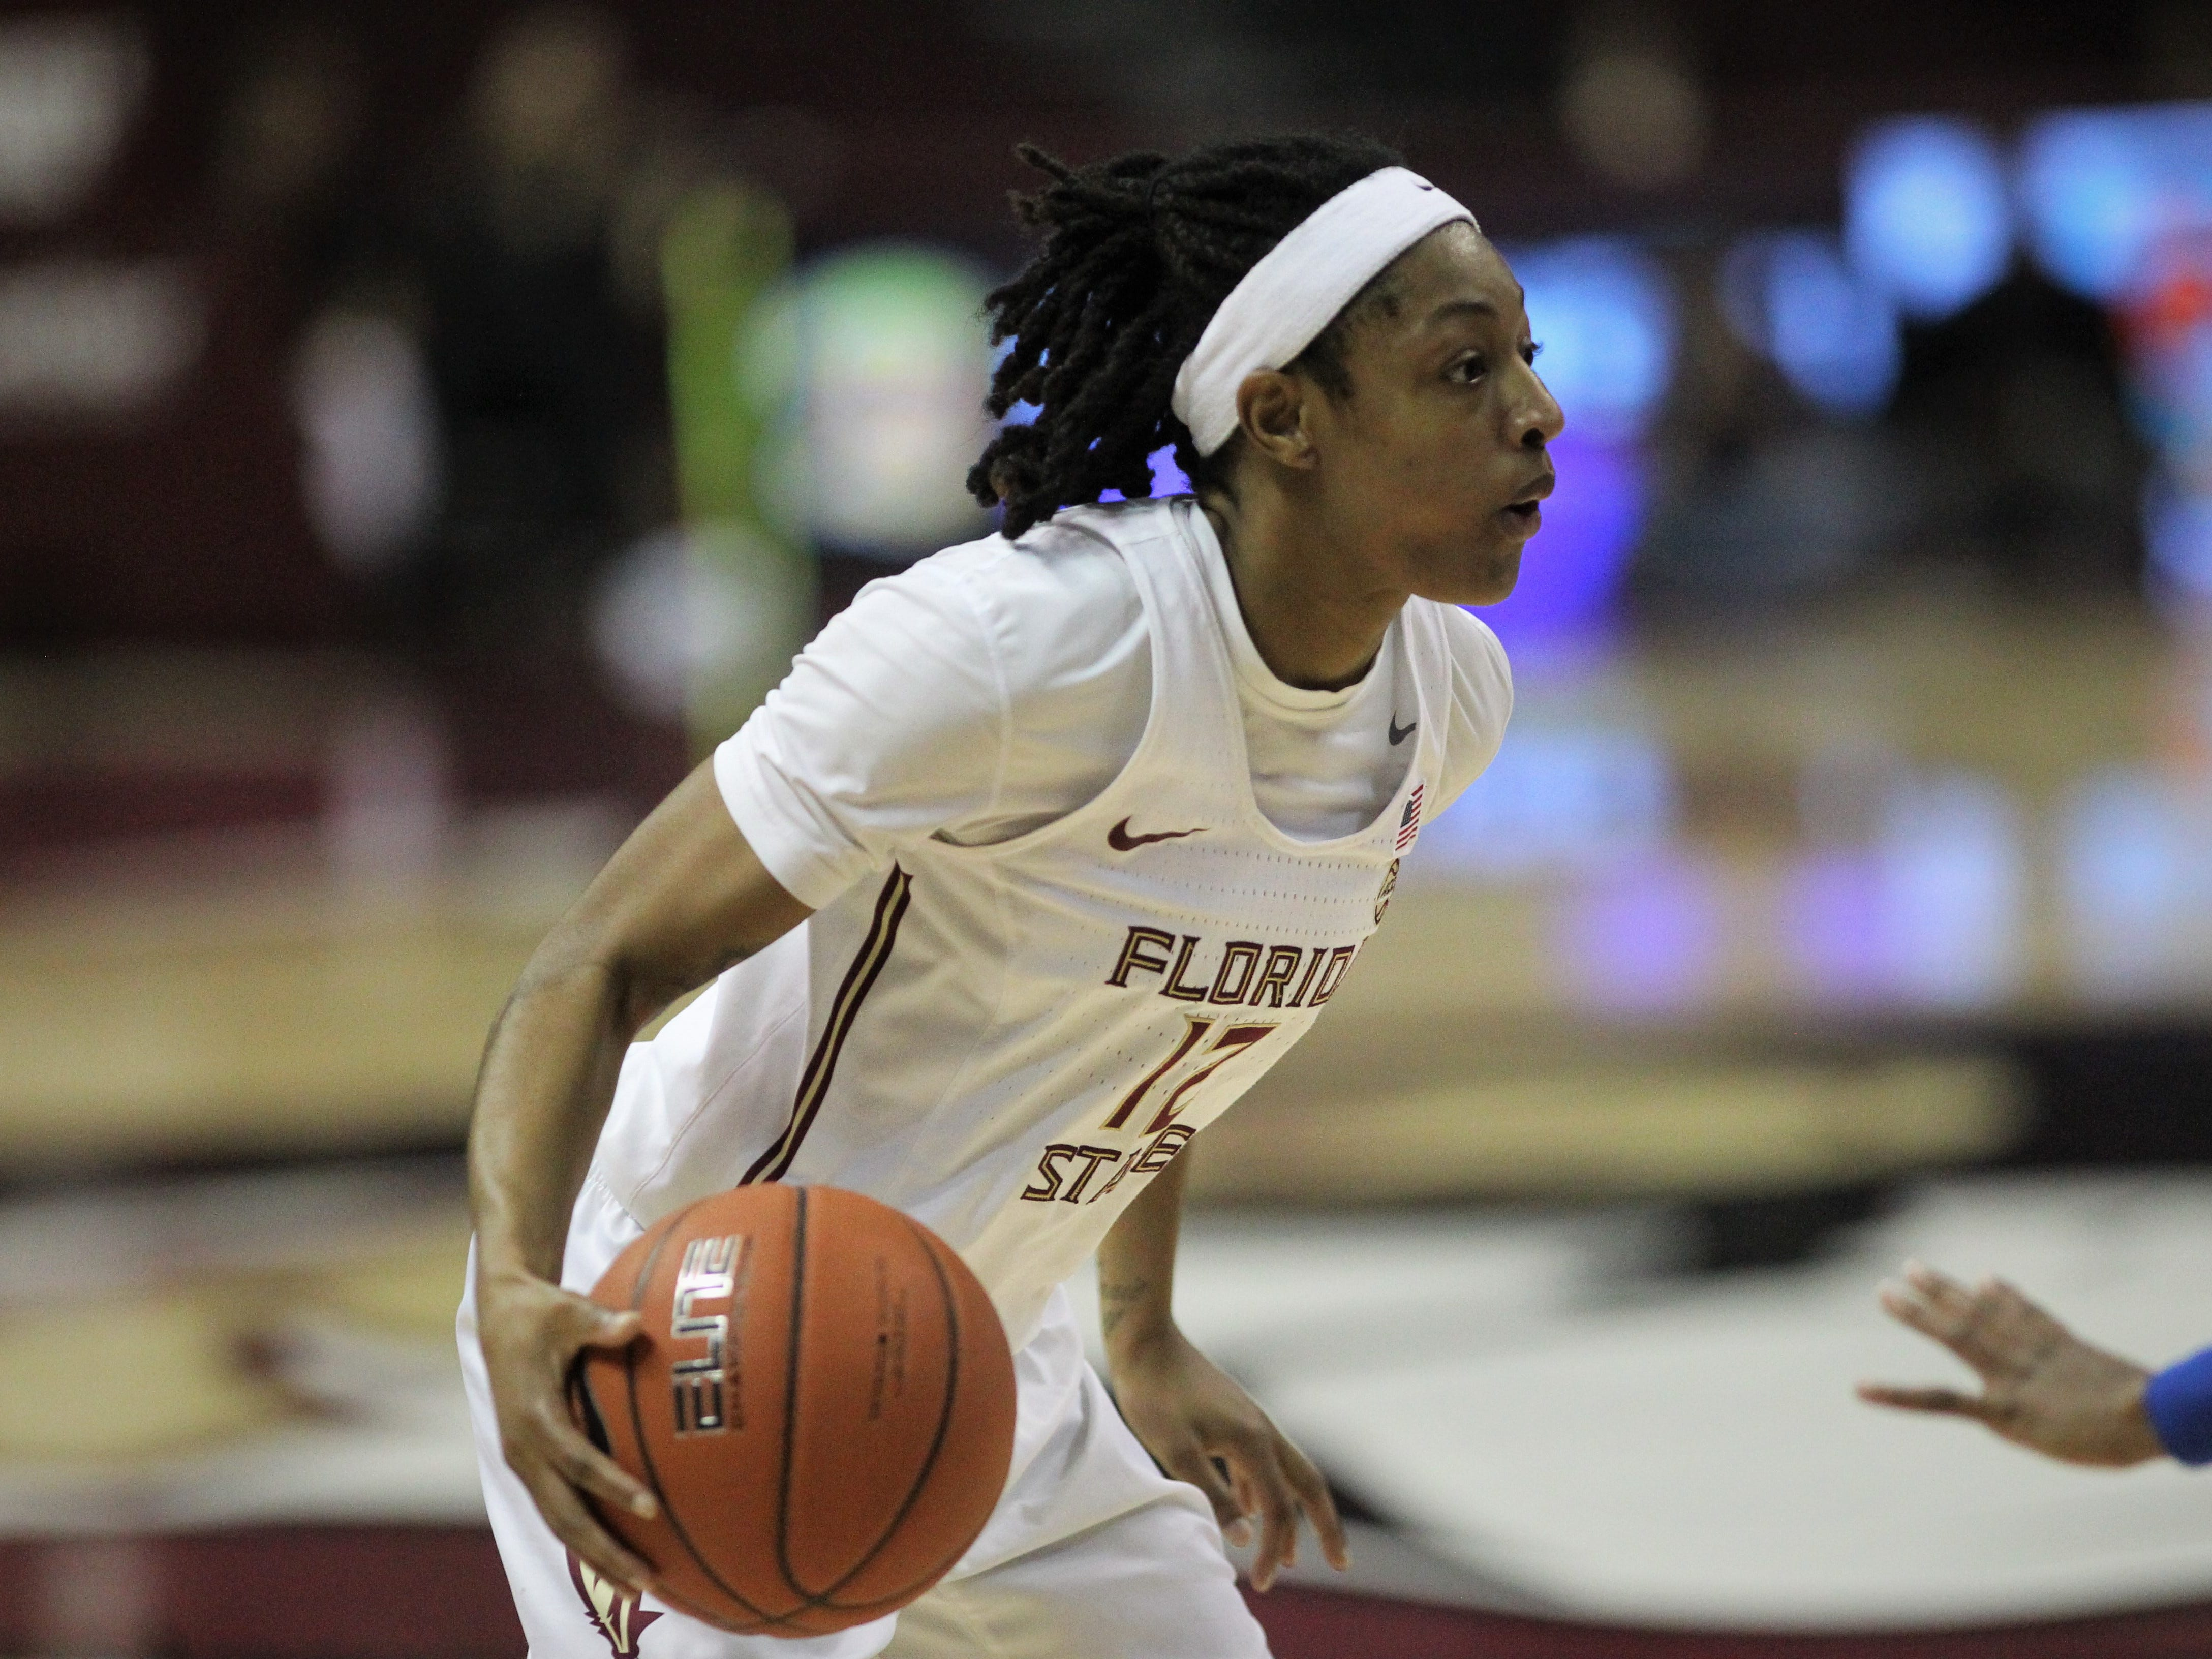 Florida State's Nicki Ekhomu brings the ball up the court during the second half of the Seminoles' game against Florida at the Tucker Civic Center on Nov. 11, 2018.